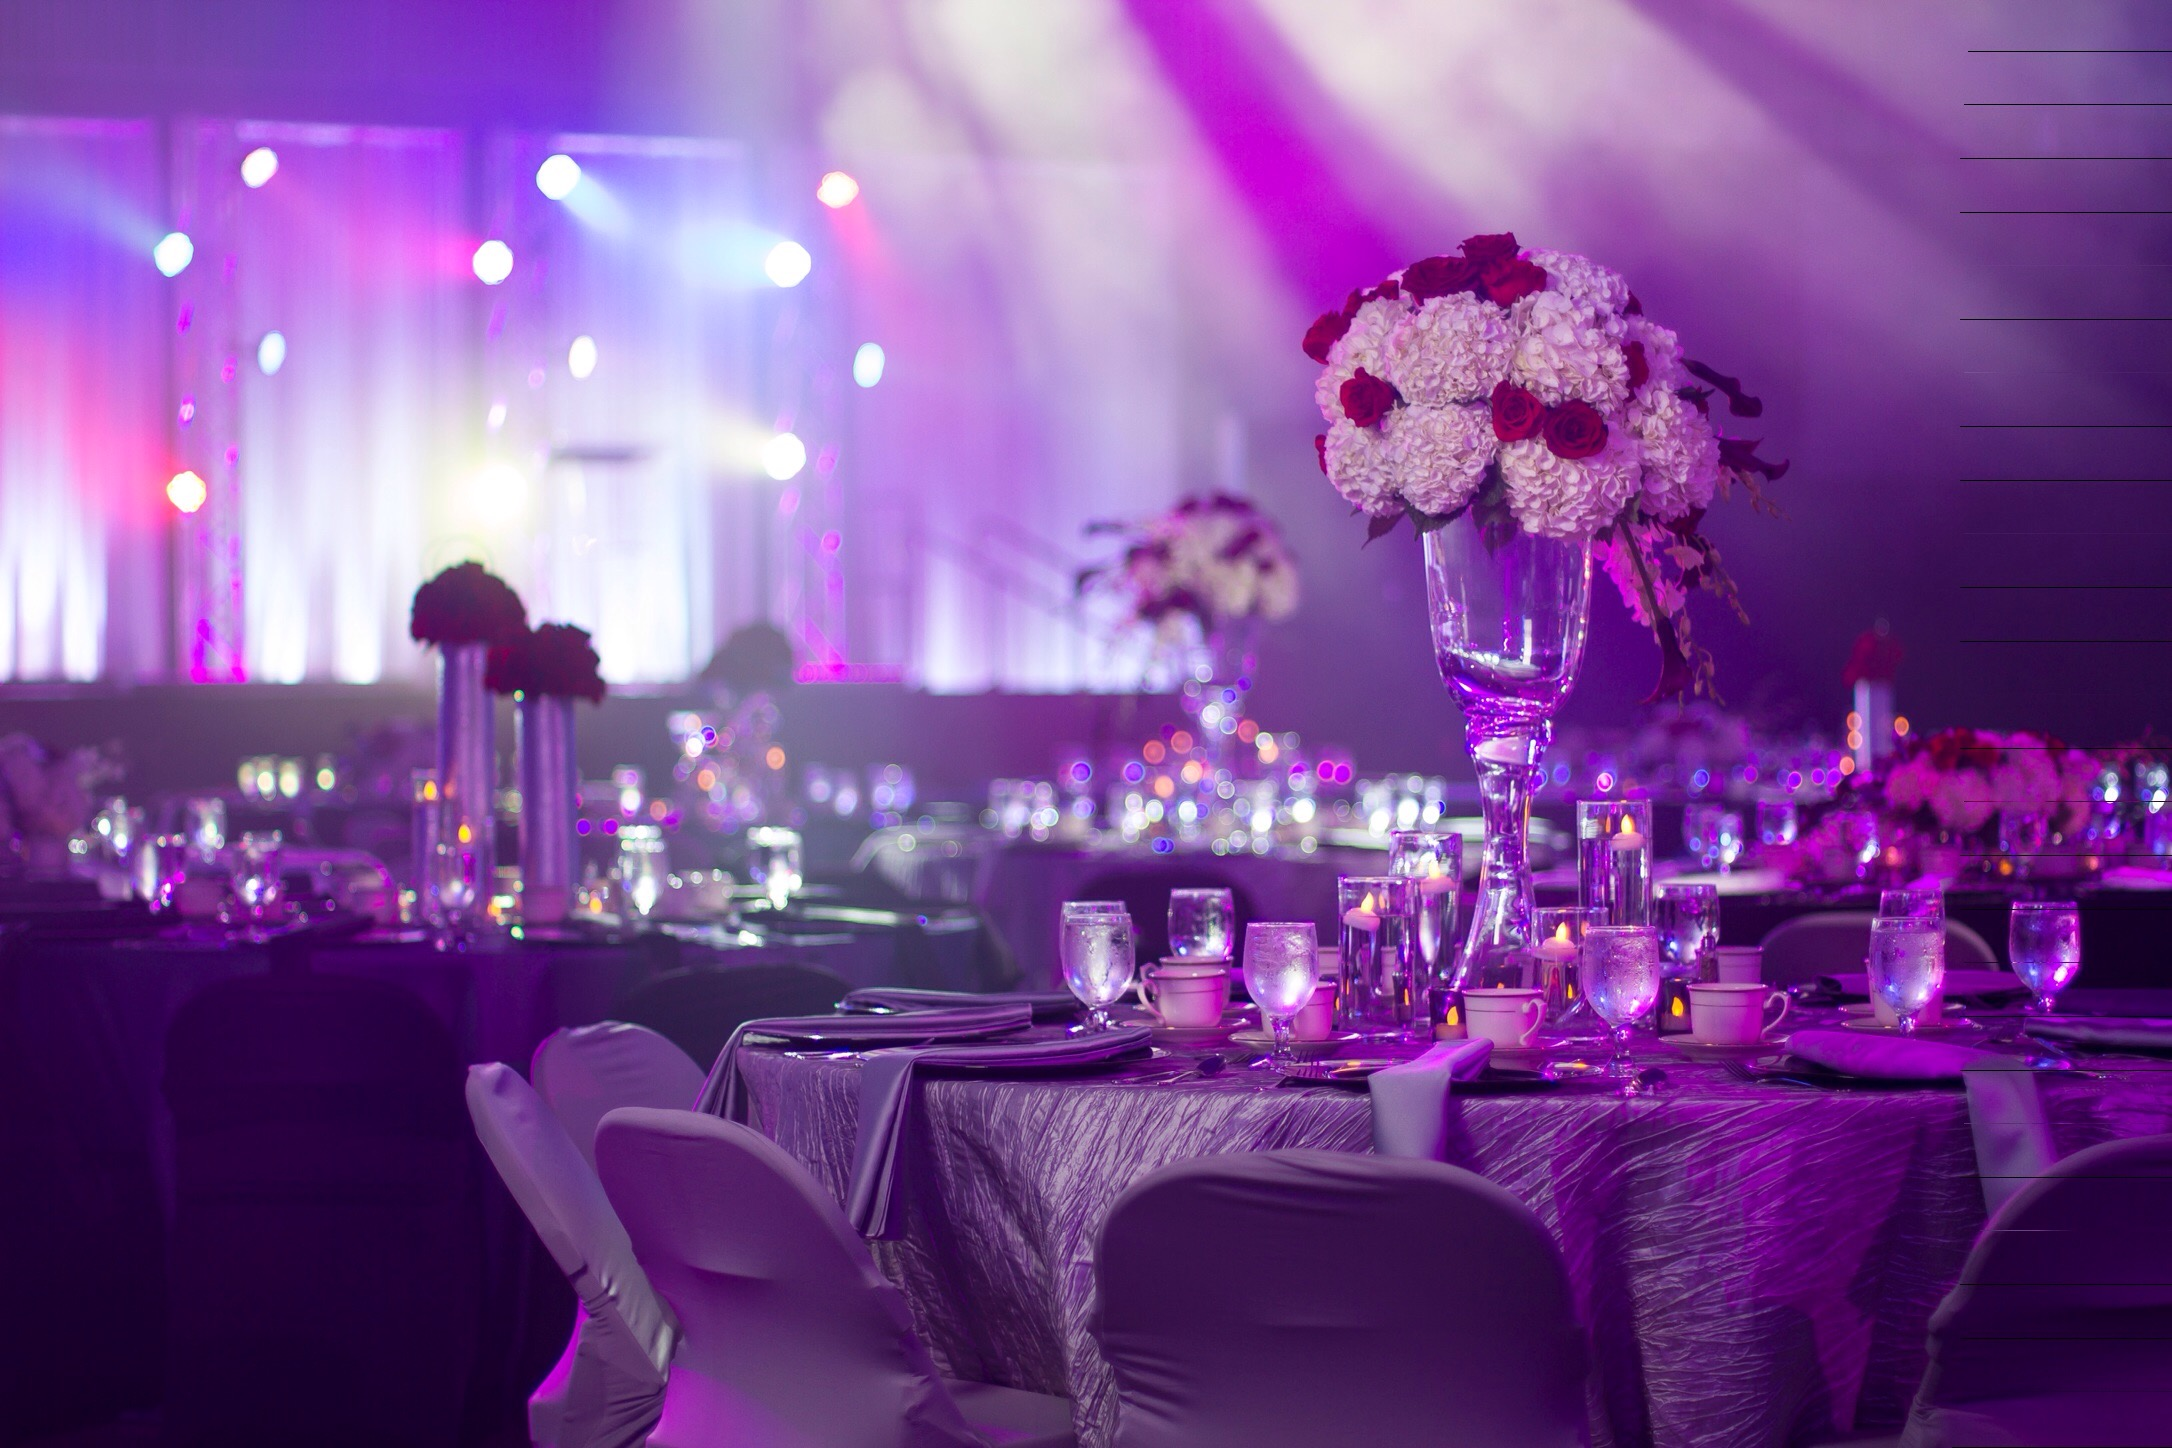 Purple and white light bathe an elegant dining area full of tables with large floral centerpieces